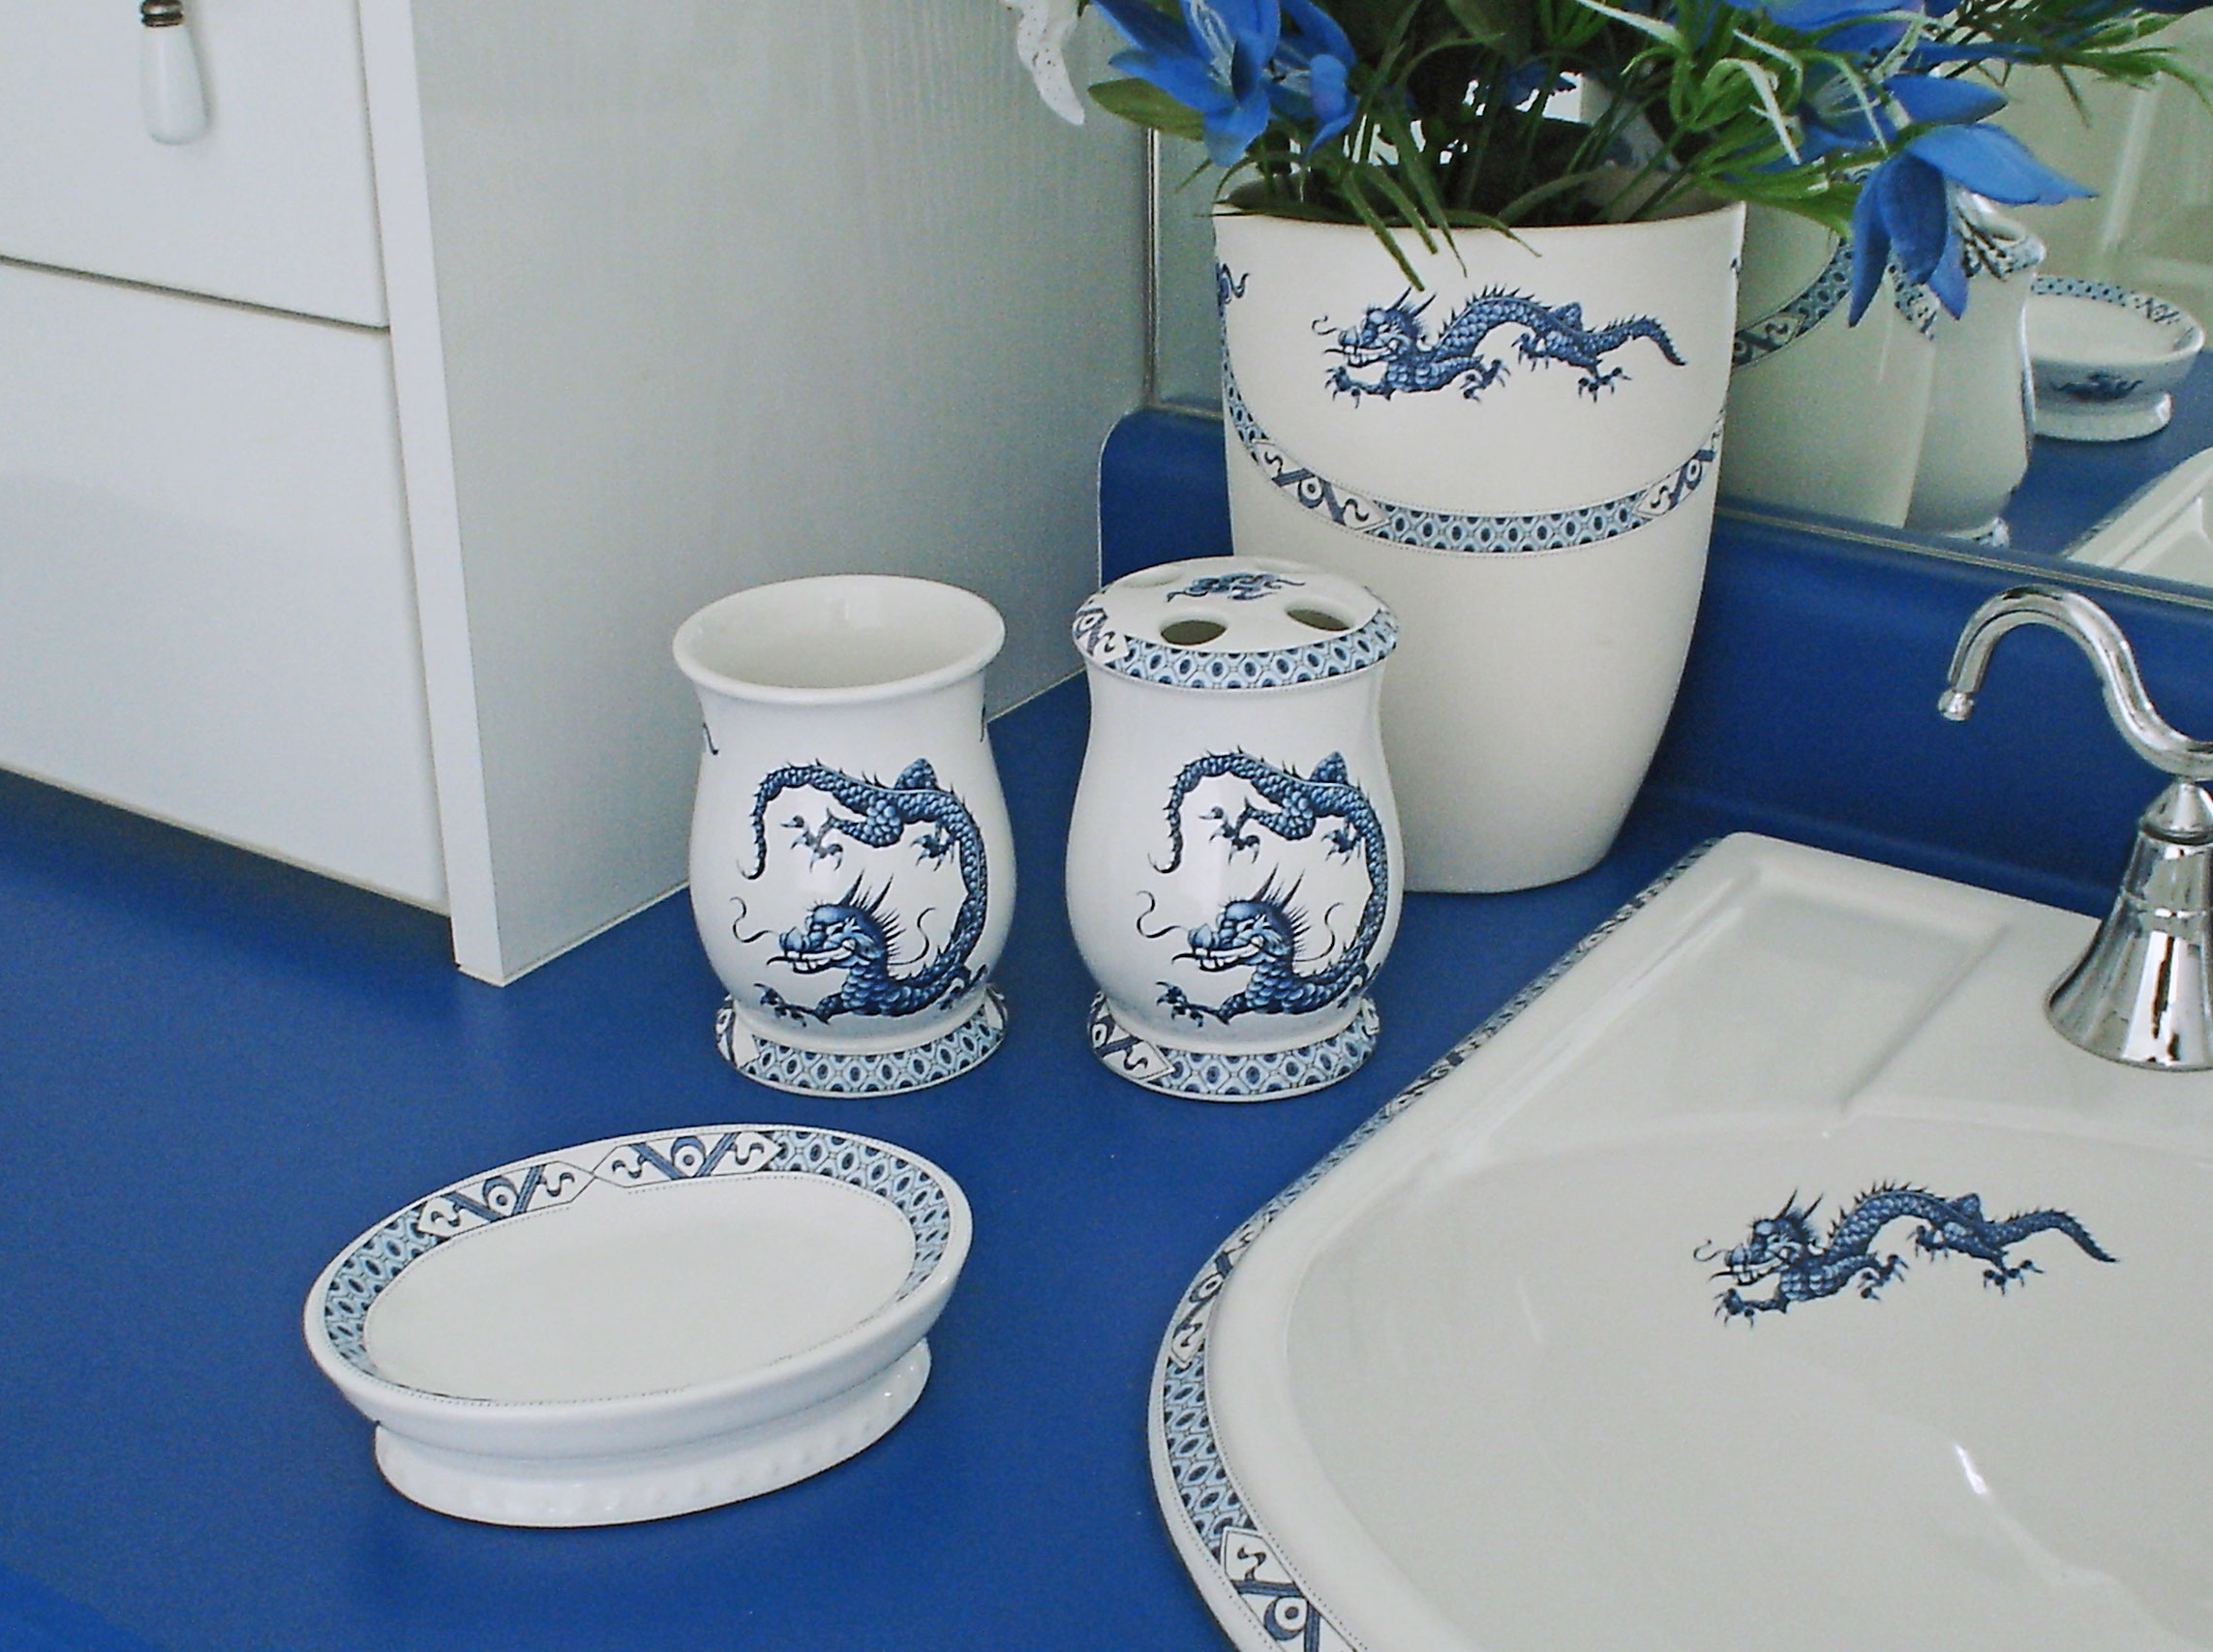 Hand painted blue and white dragon ceramic bathroom accessories